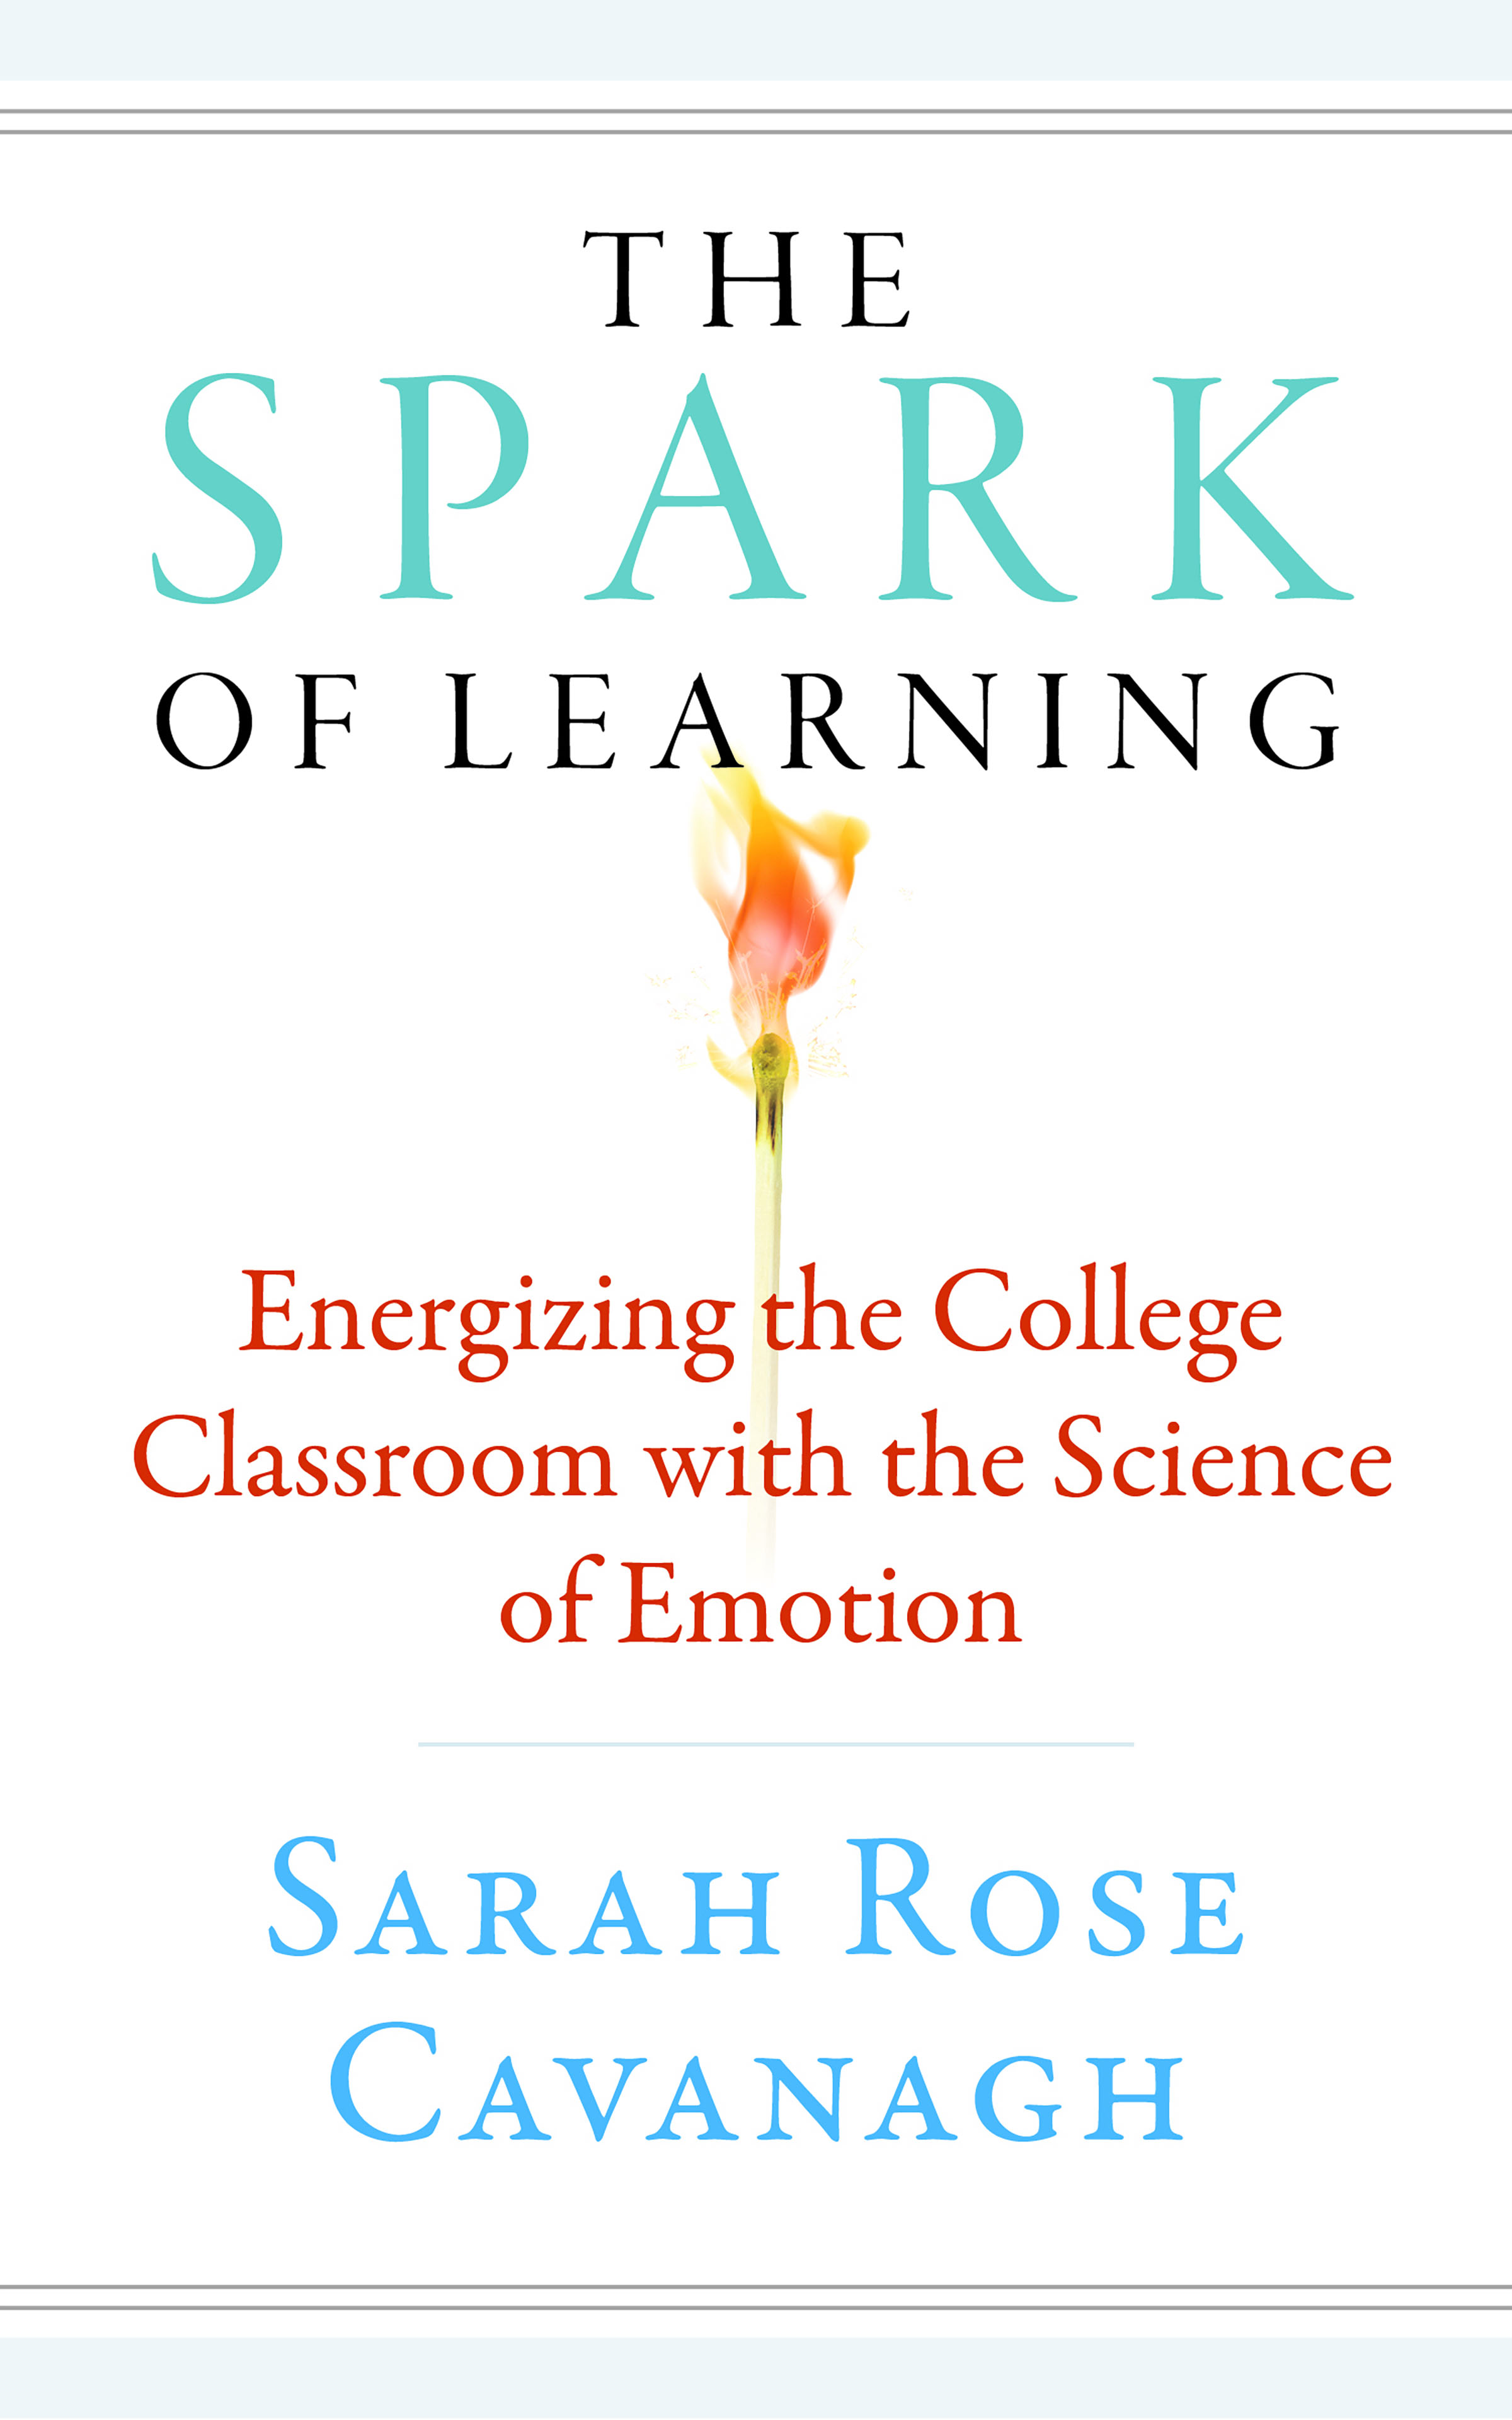 The Spark of Learning Front Book Cover Title with Match Burning